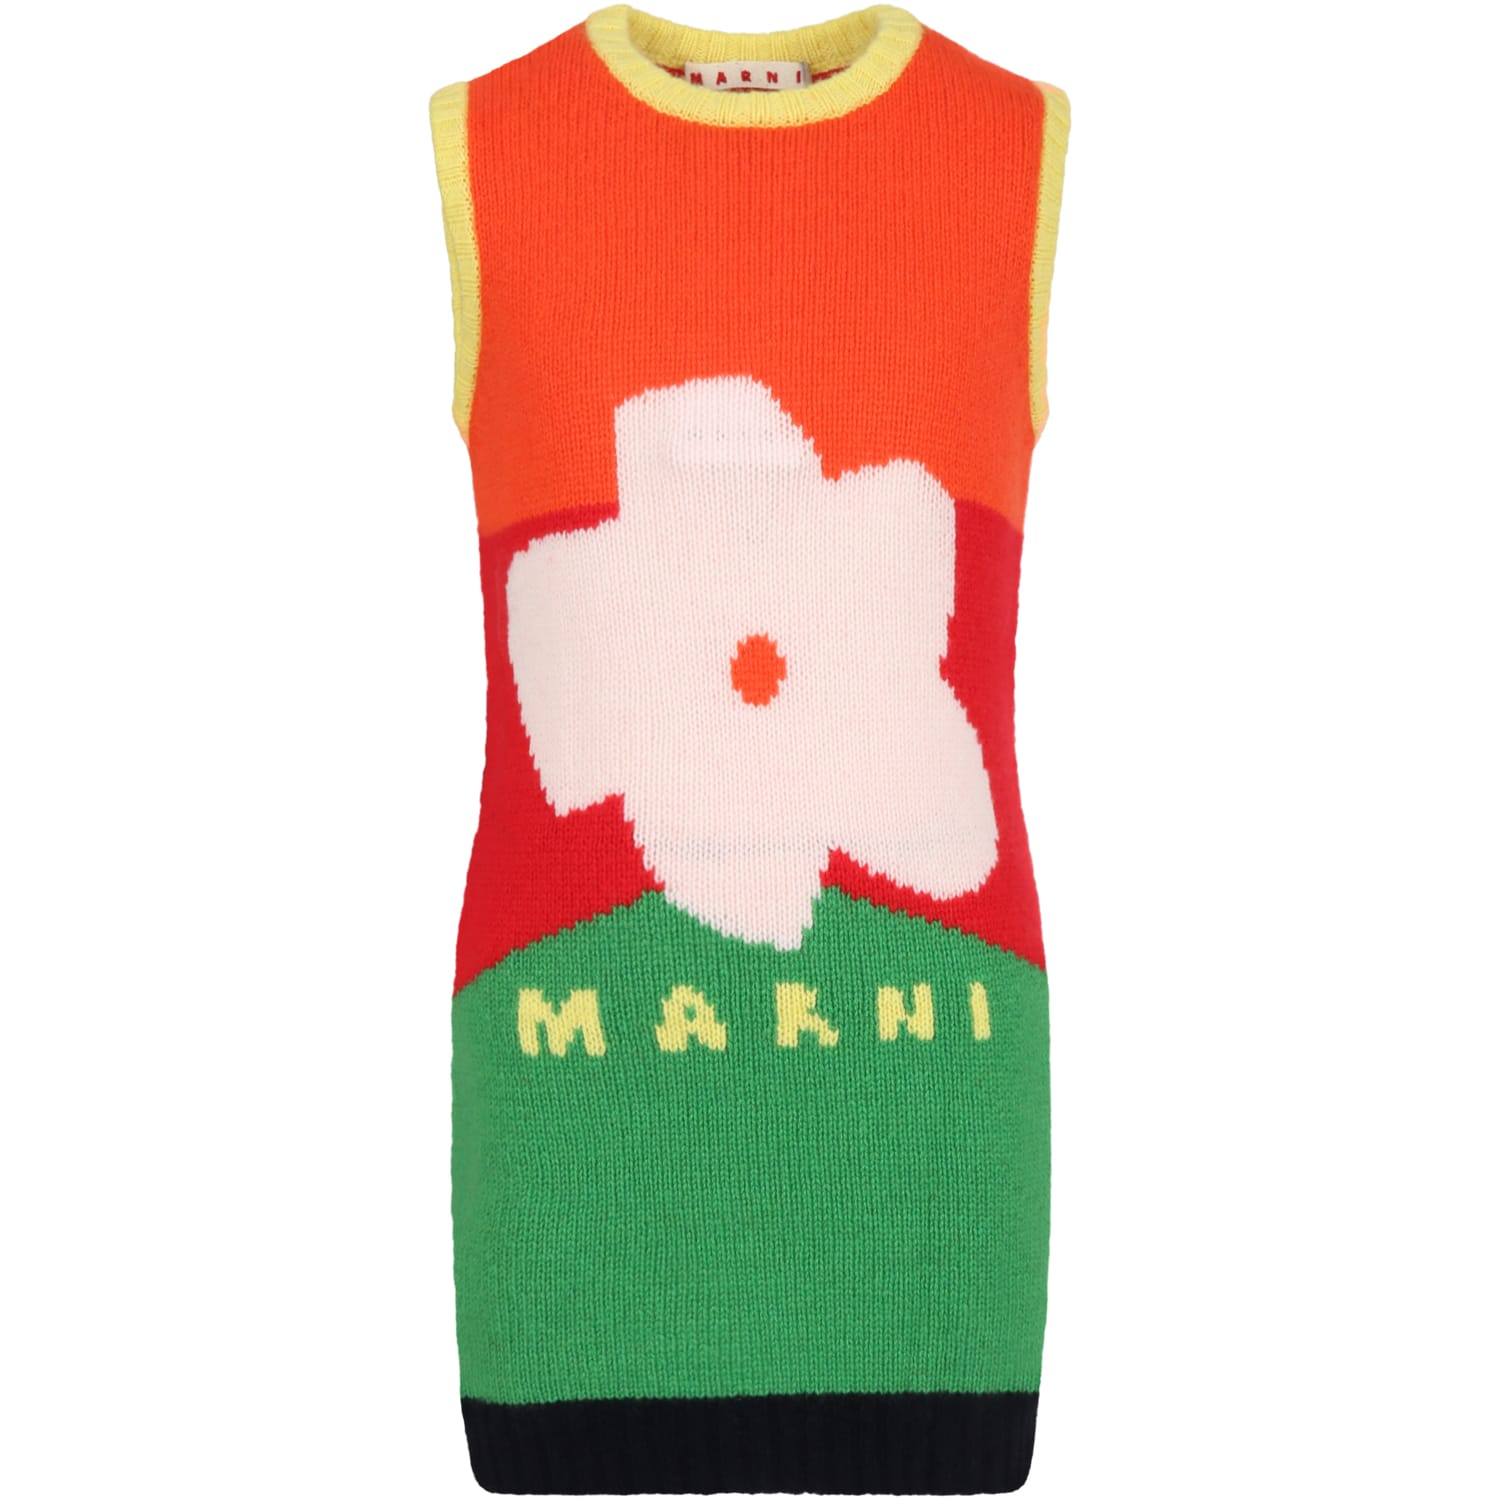 Marni Dresses MULTICOLOR DRESS FOR GIRL WITH FLOWER